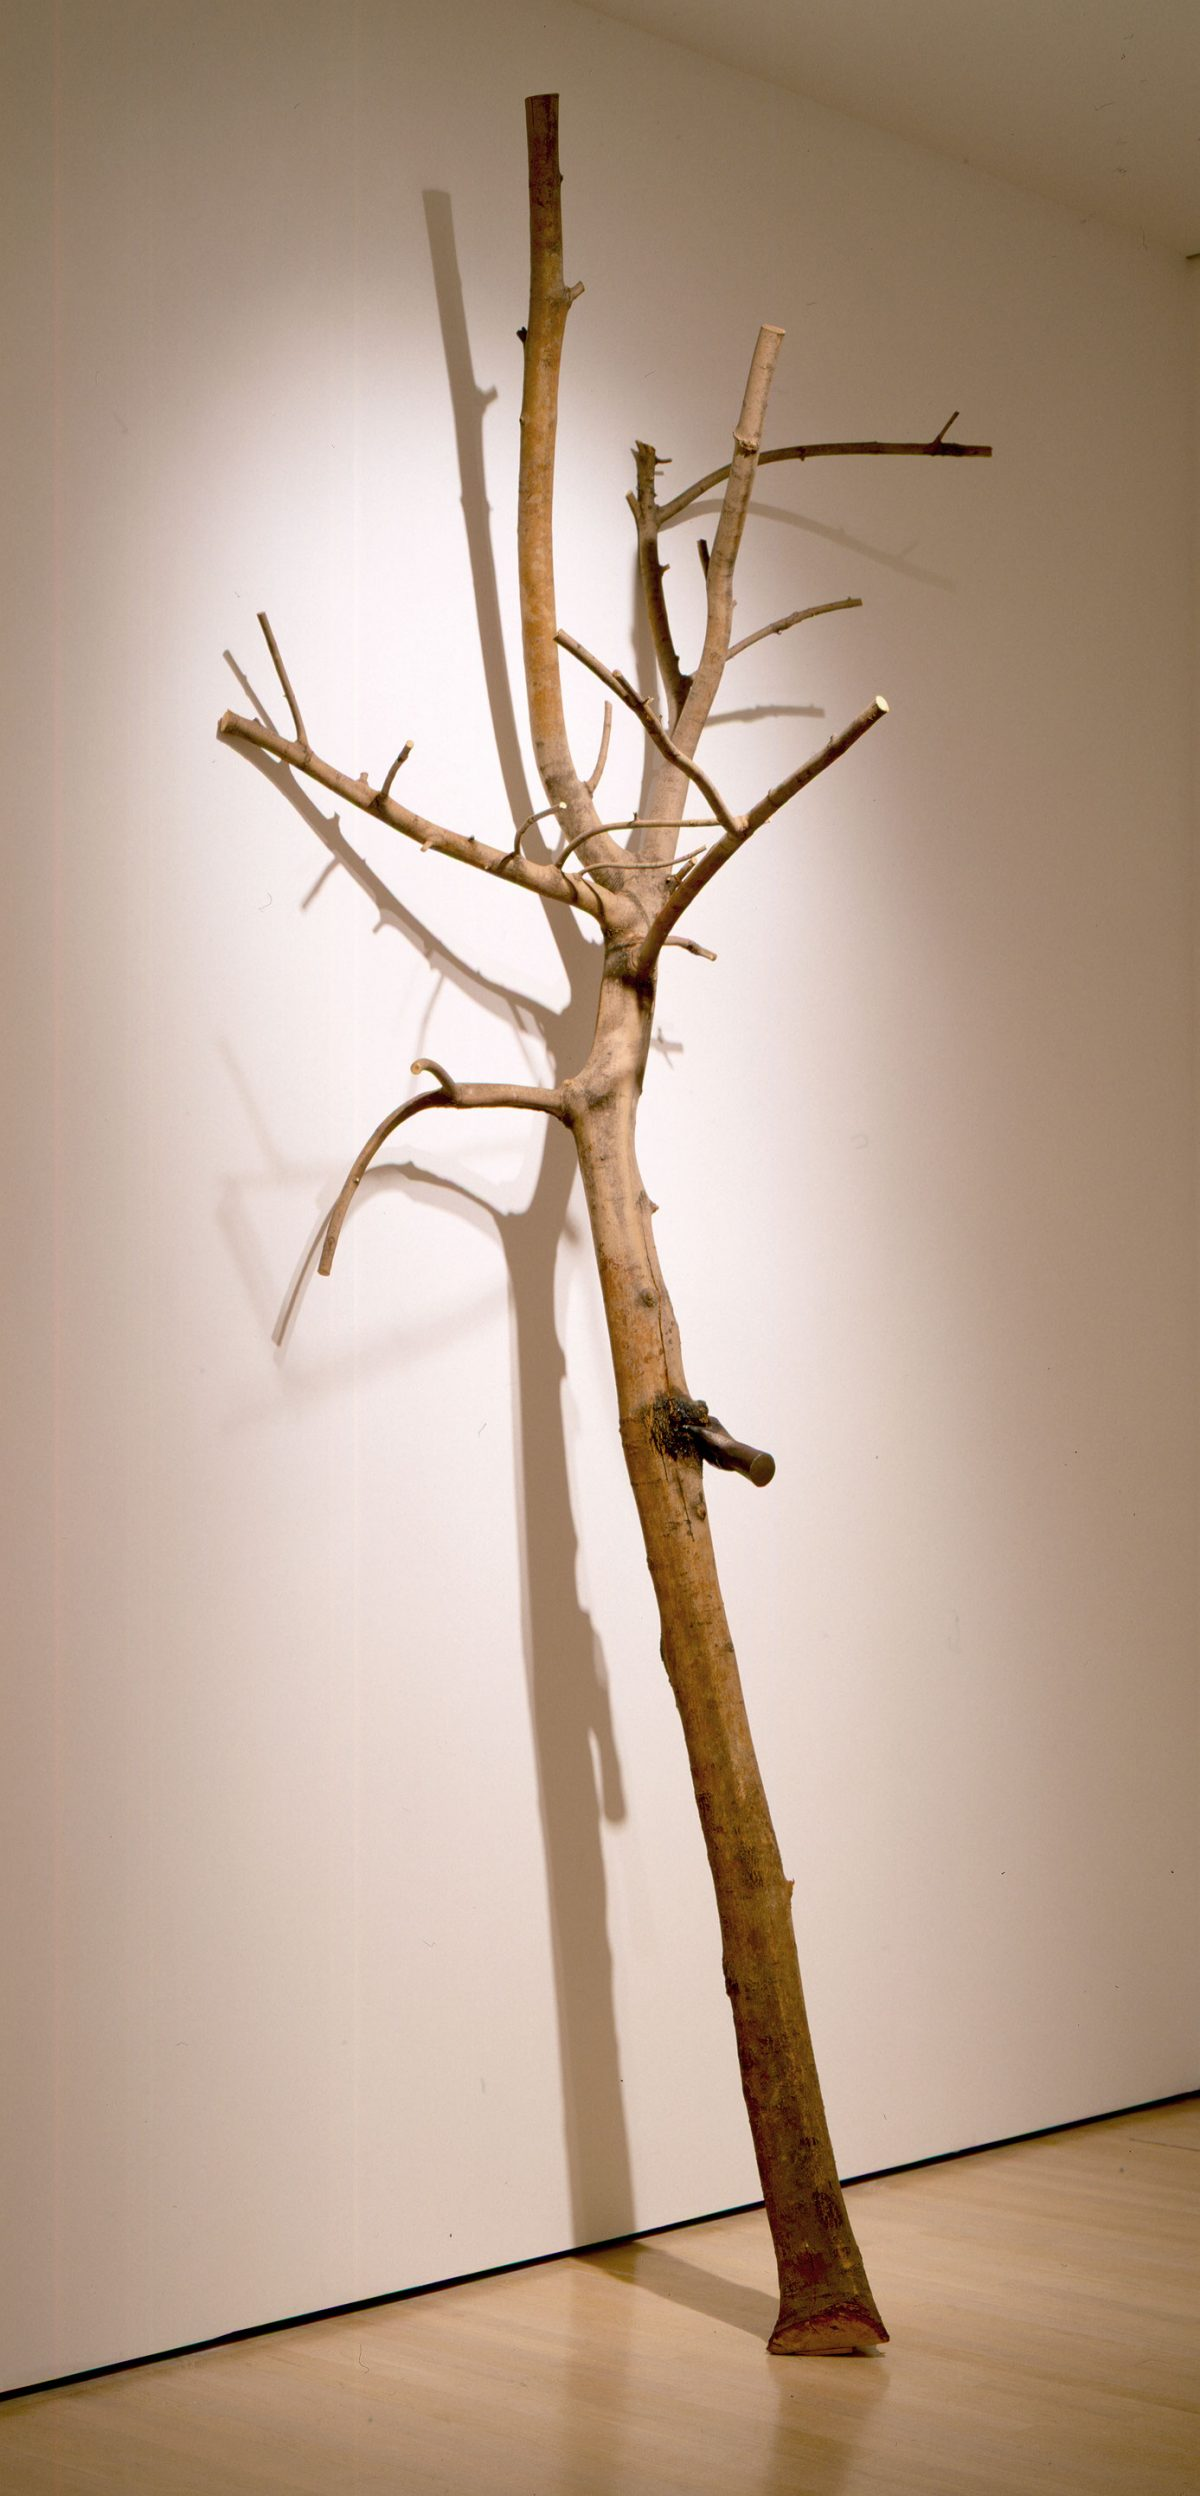 I Have Been a Tree in the Hand, 1984-1991, Giuseppe Penone, Bois et fer.